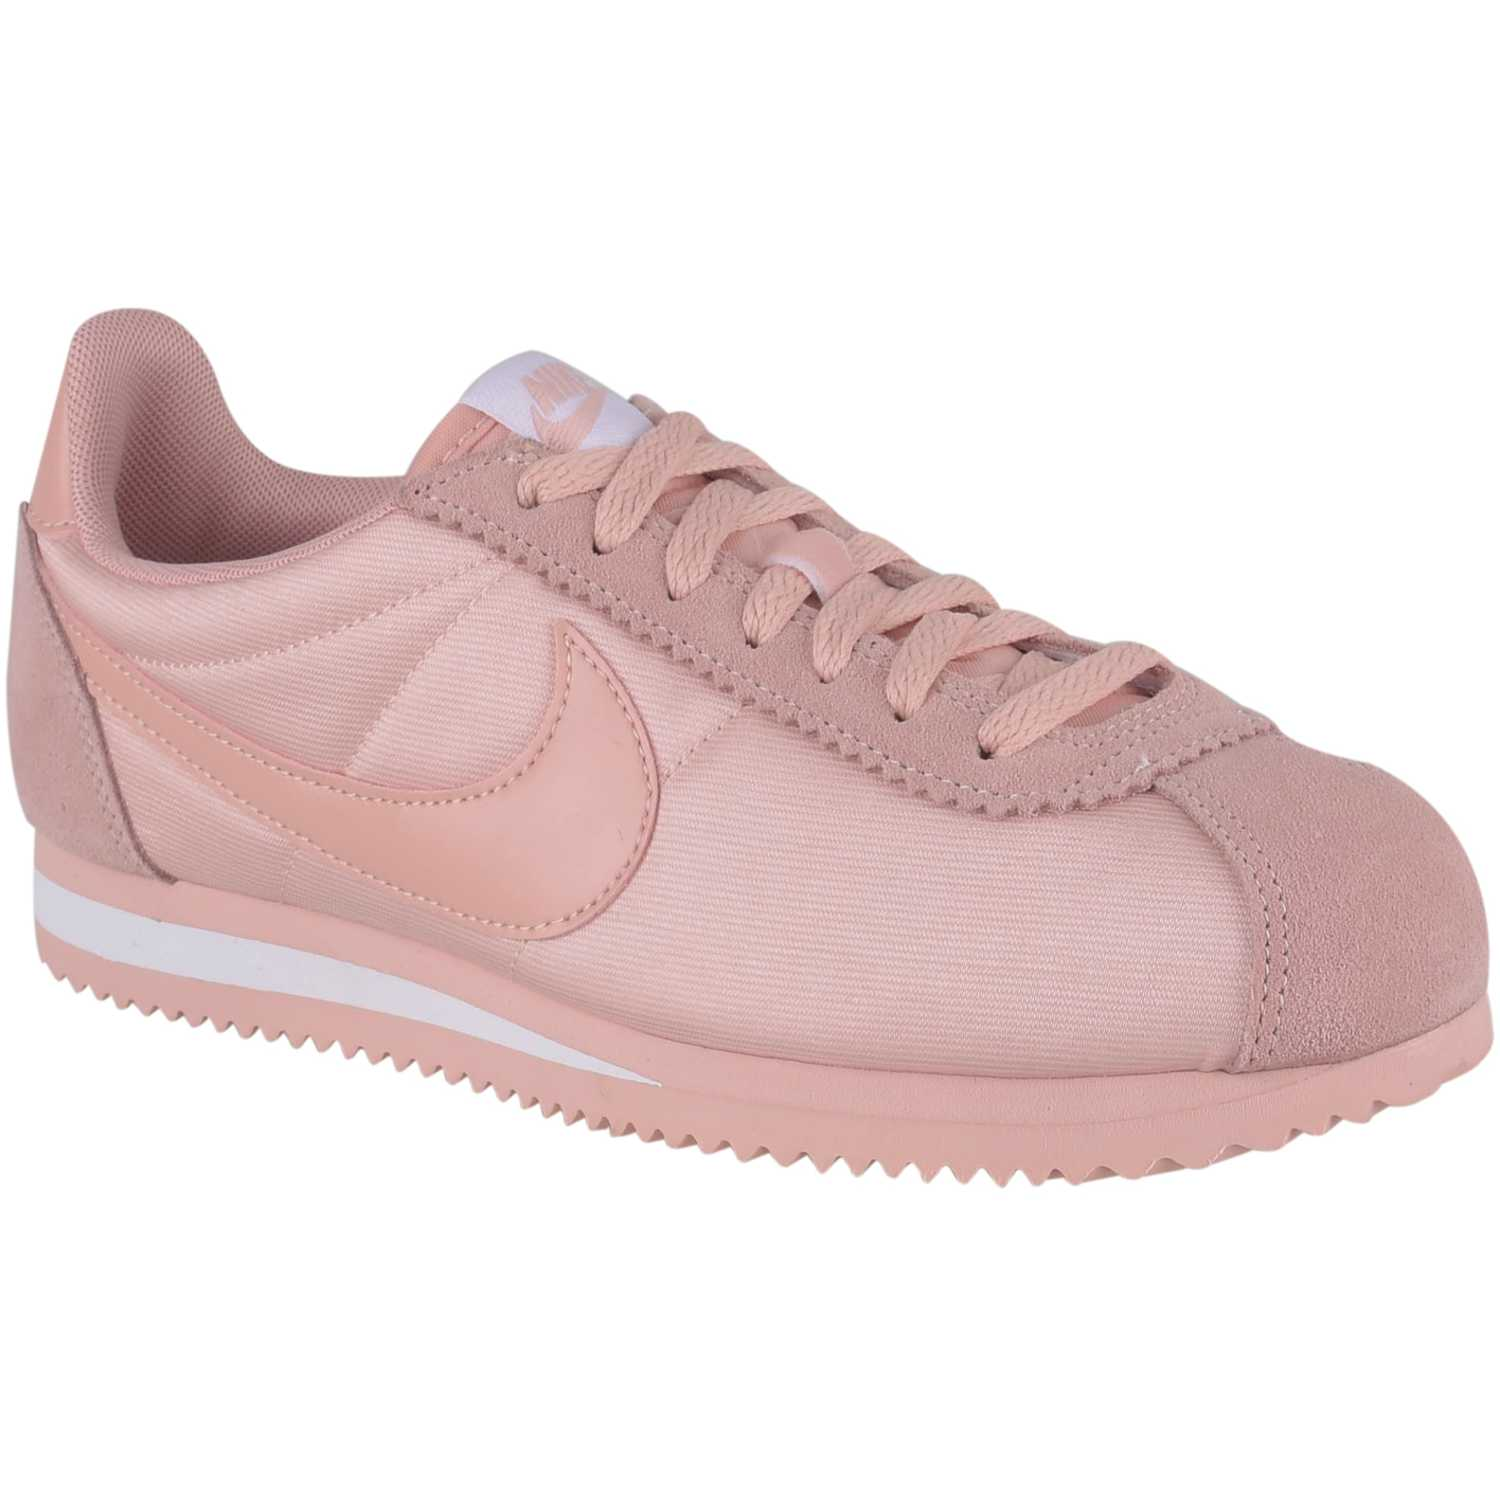 shop nike cortez nylon rosado 61be5 750b4